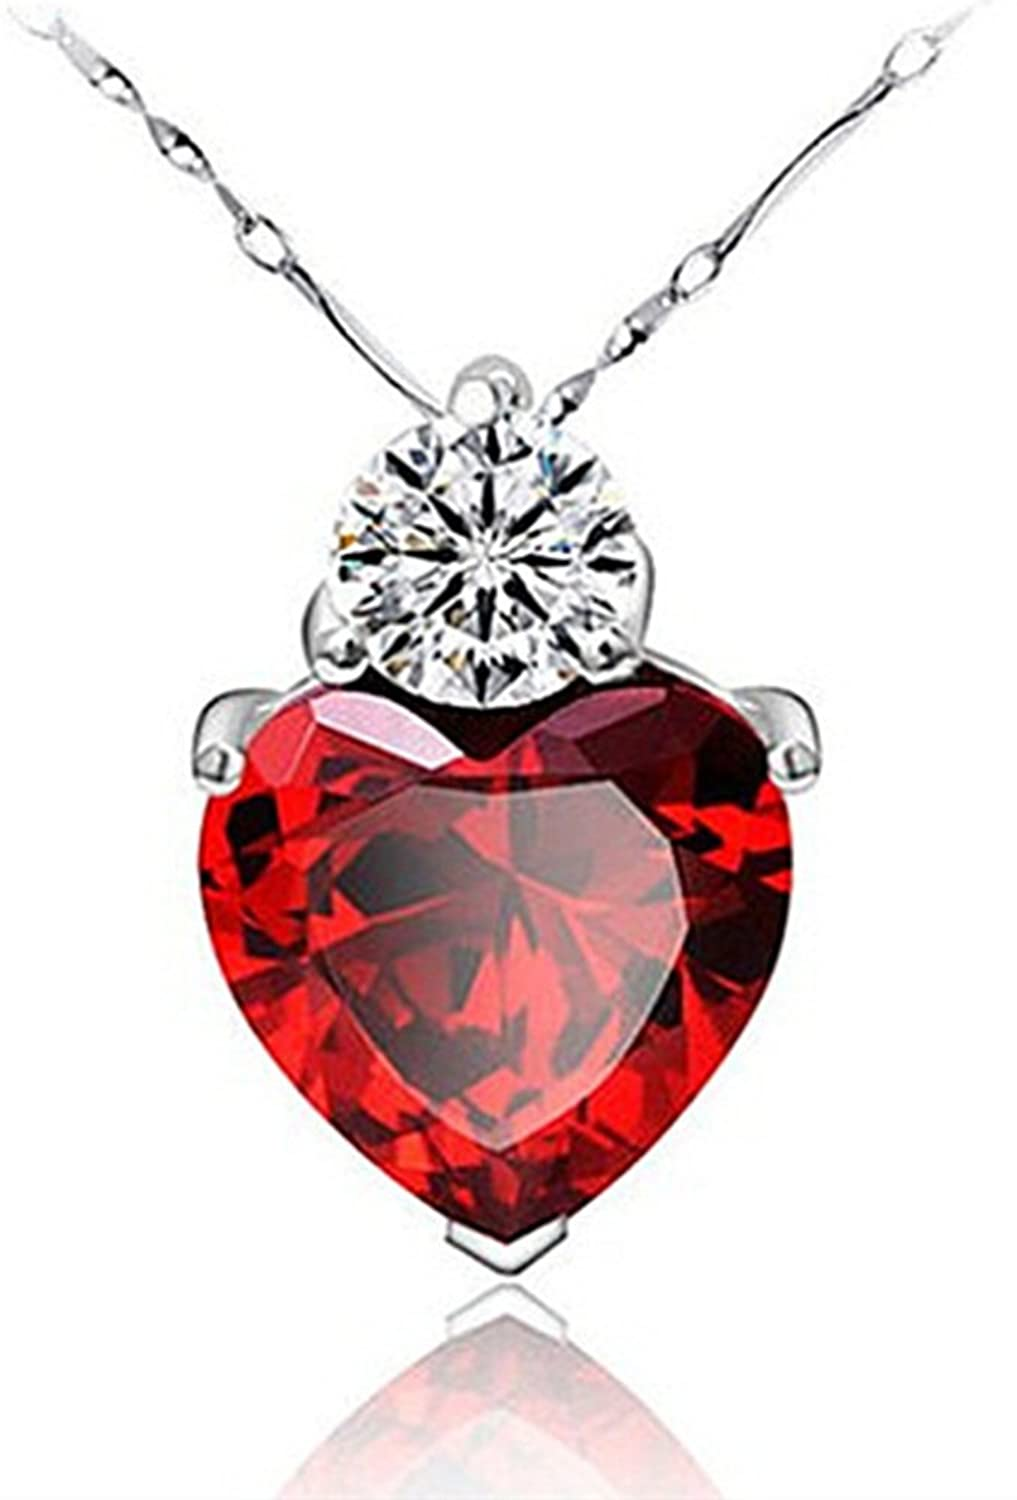 Crystal Heart Shape Pendant Necklace